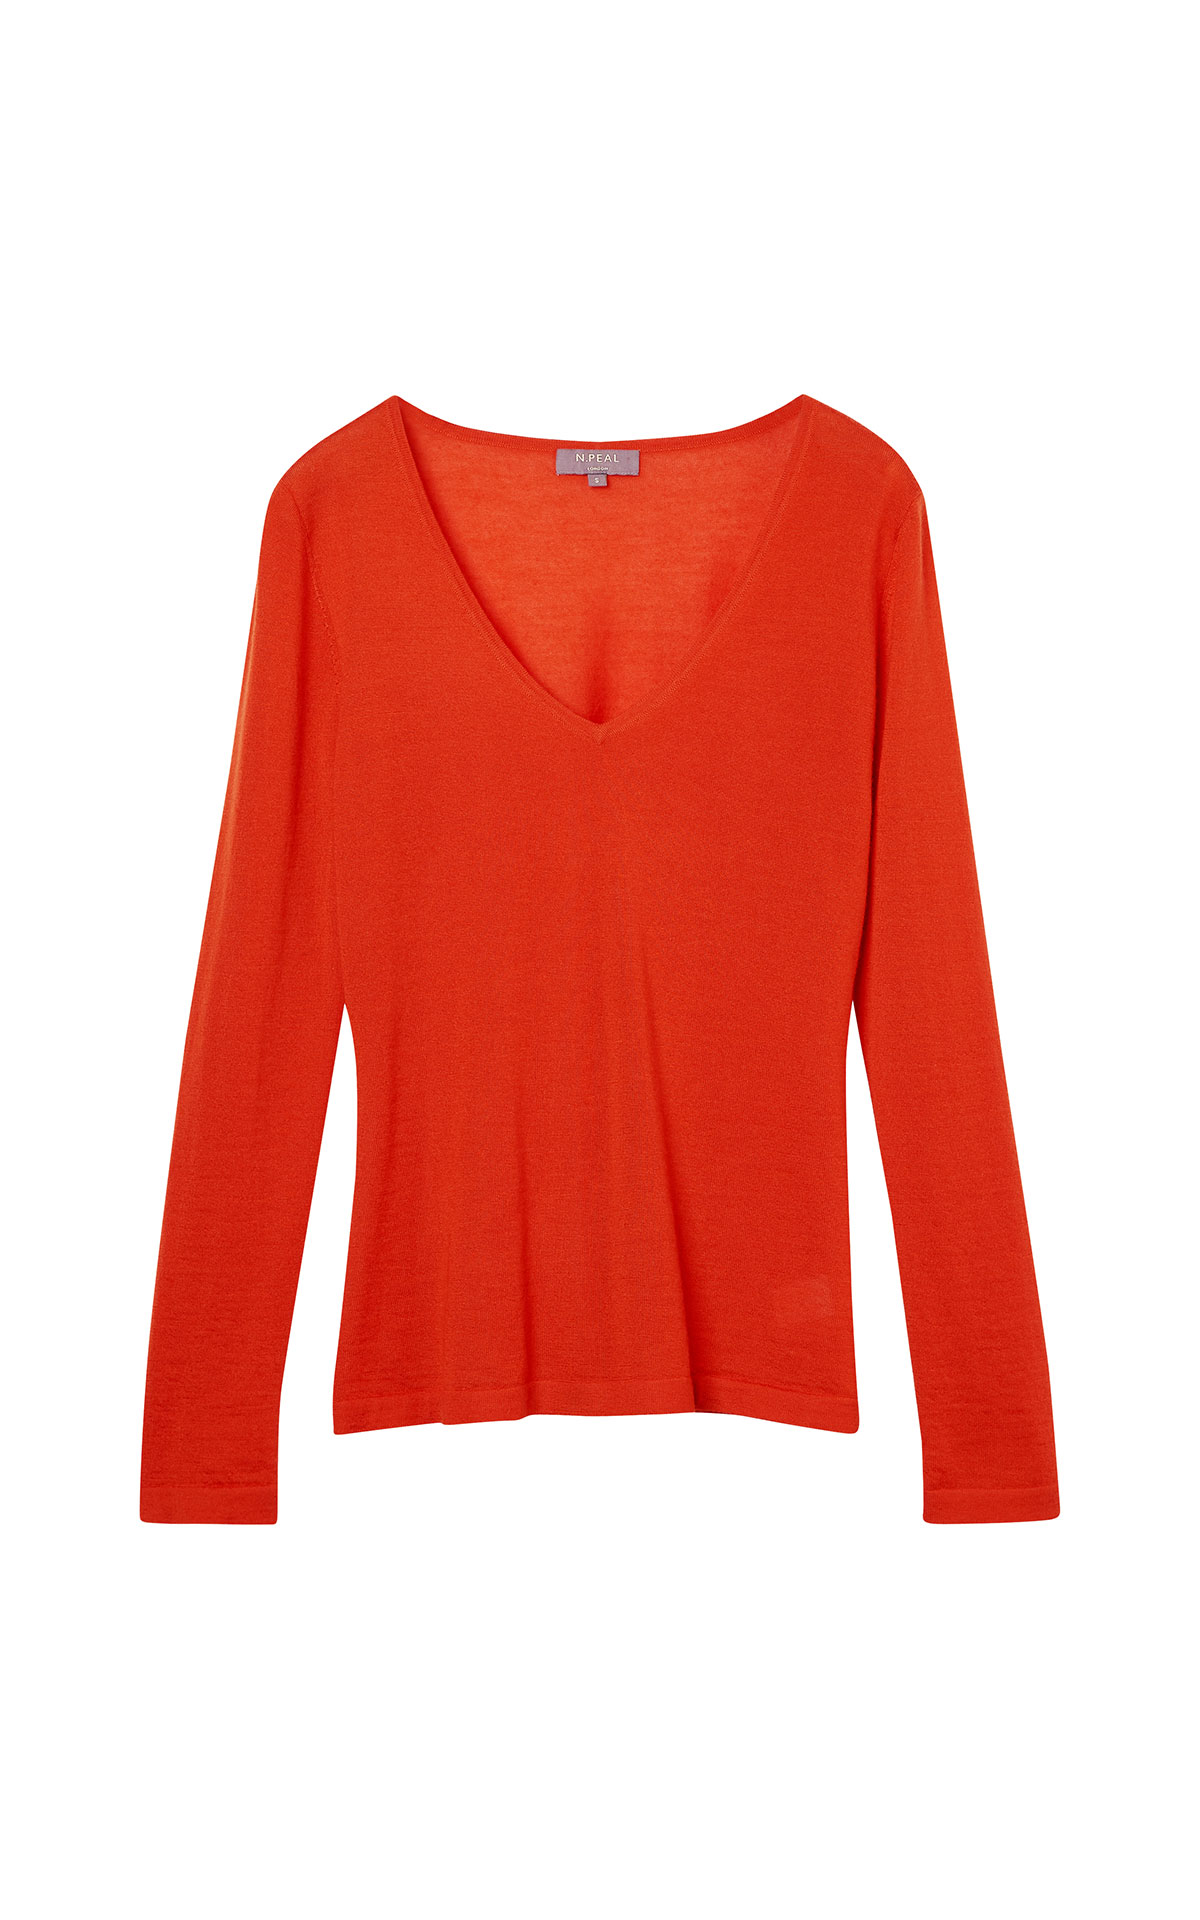 N. Peal SF v neck sweater from Bicester Village